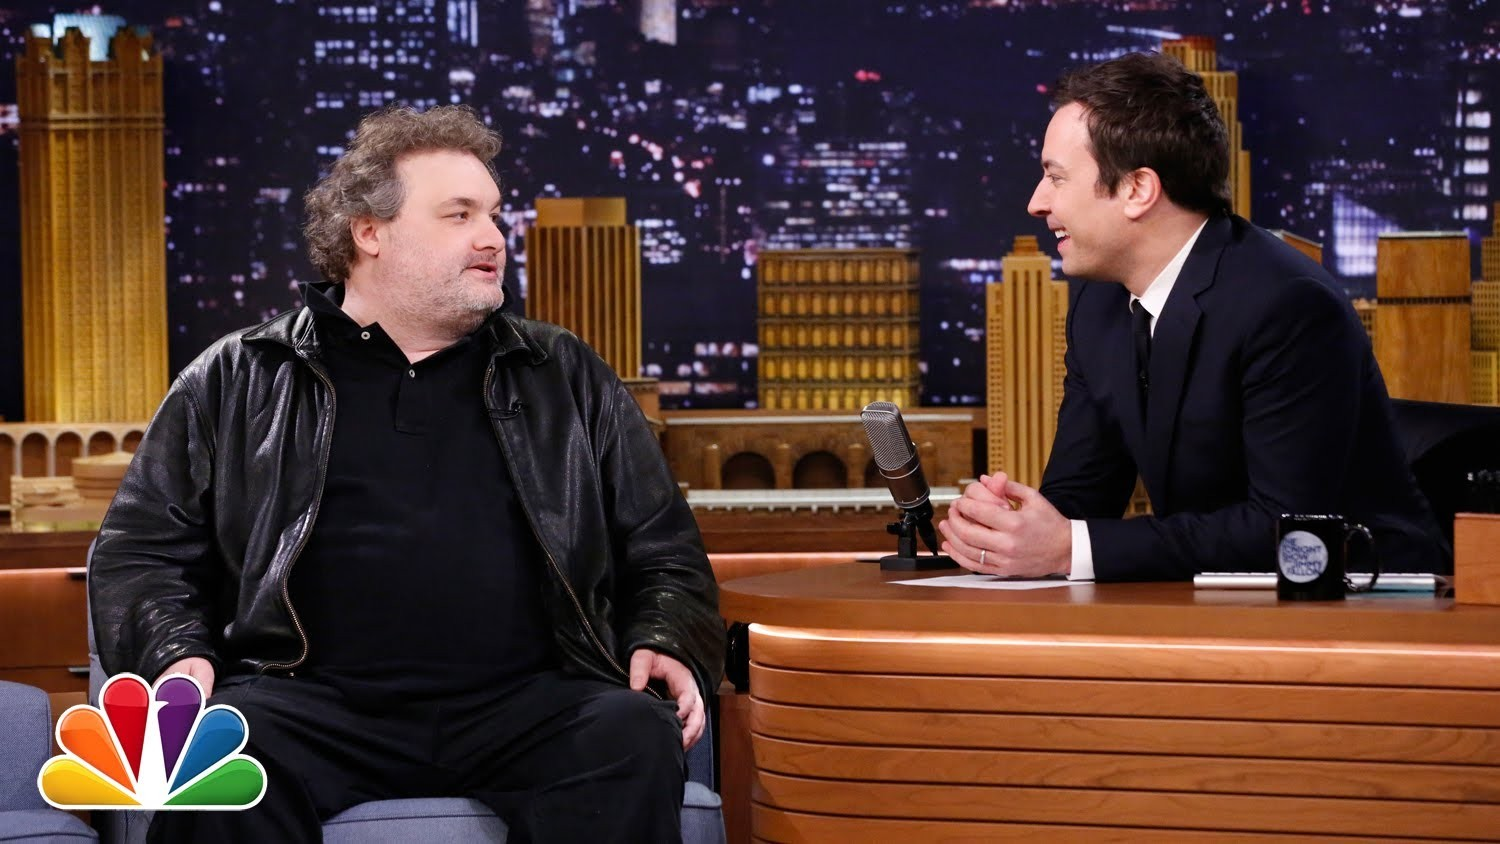 Artie Lange New York Comedy Central To Premiere Artie Lange The Stench Of Failure On